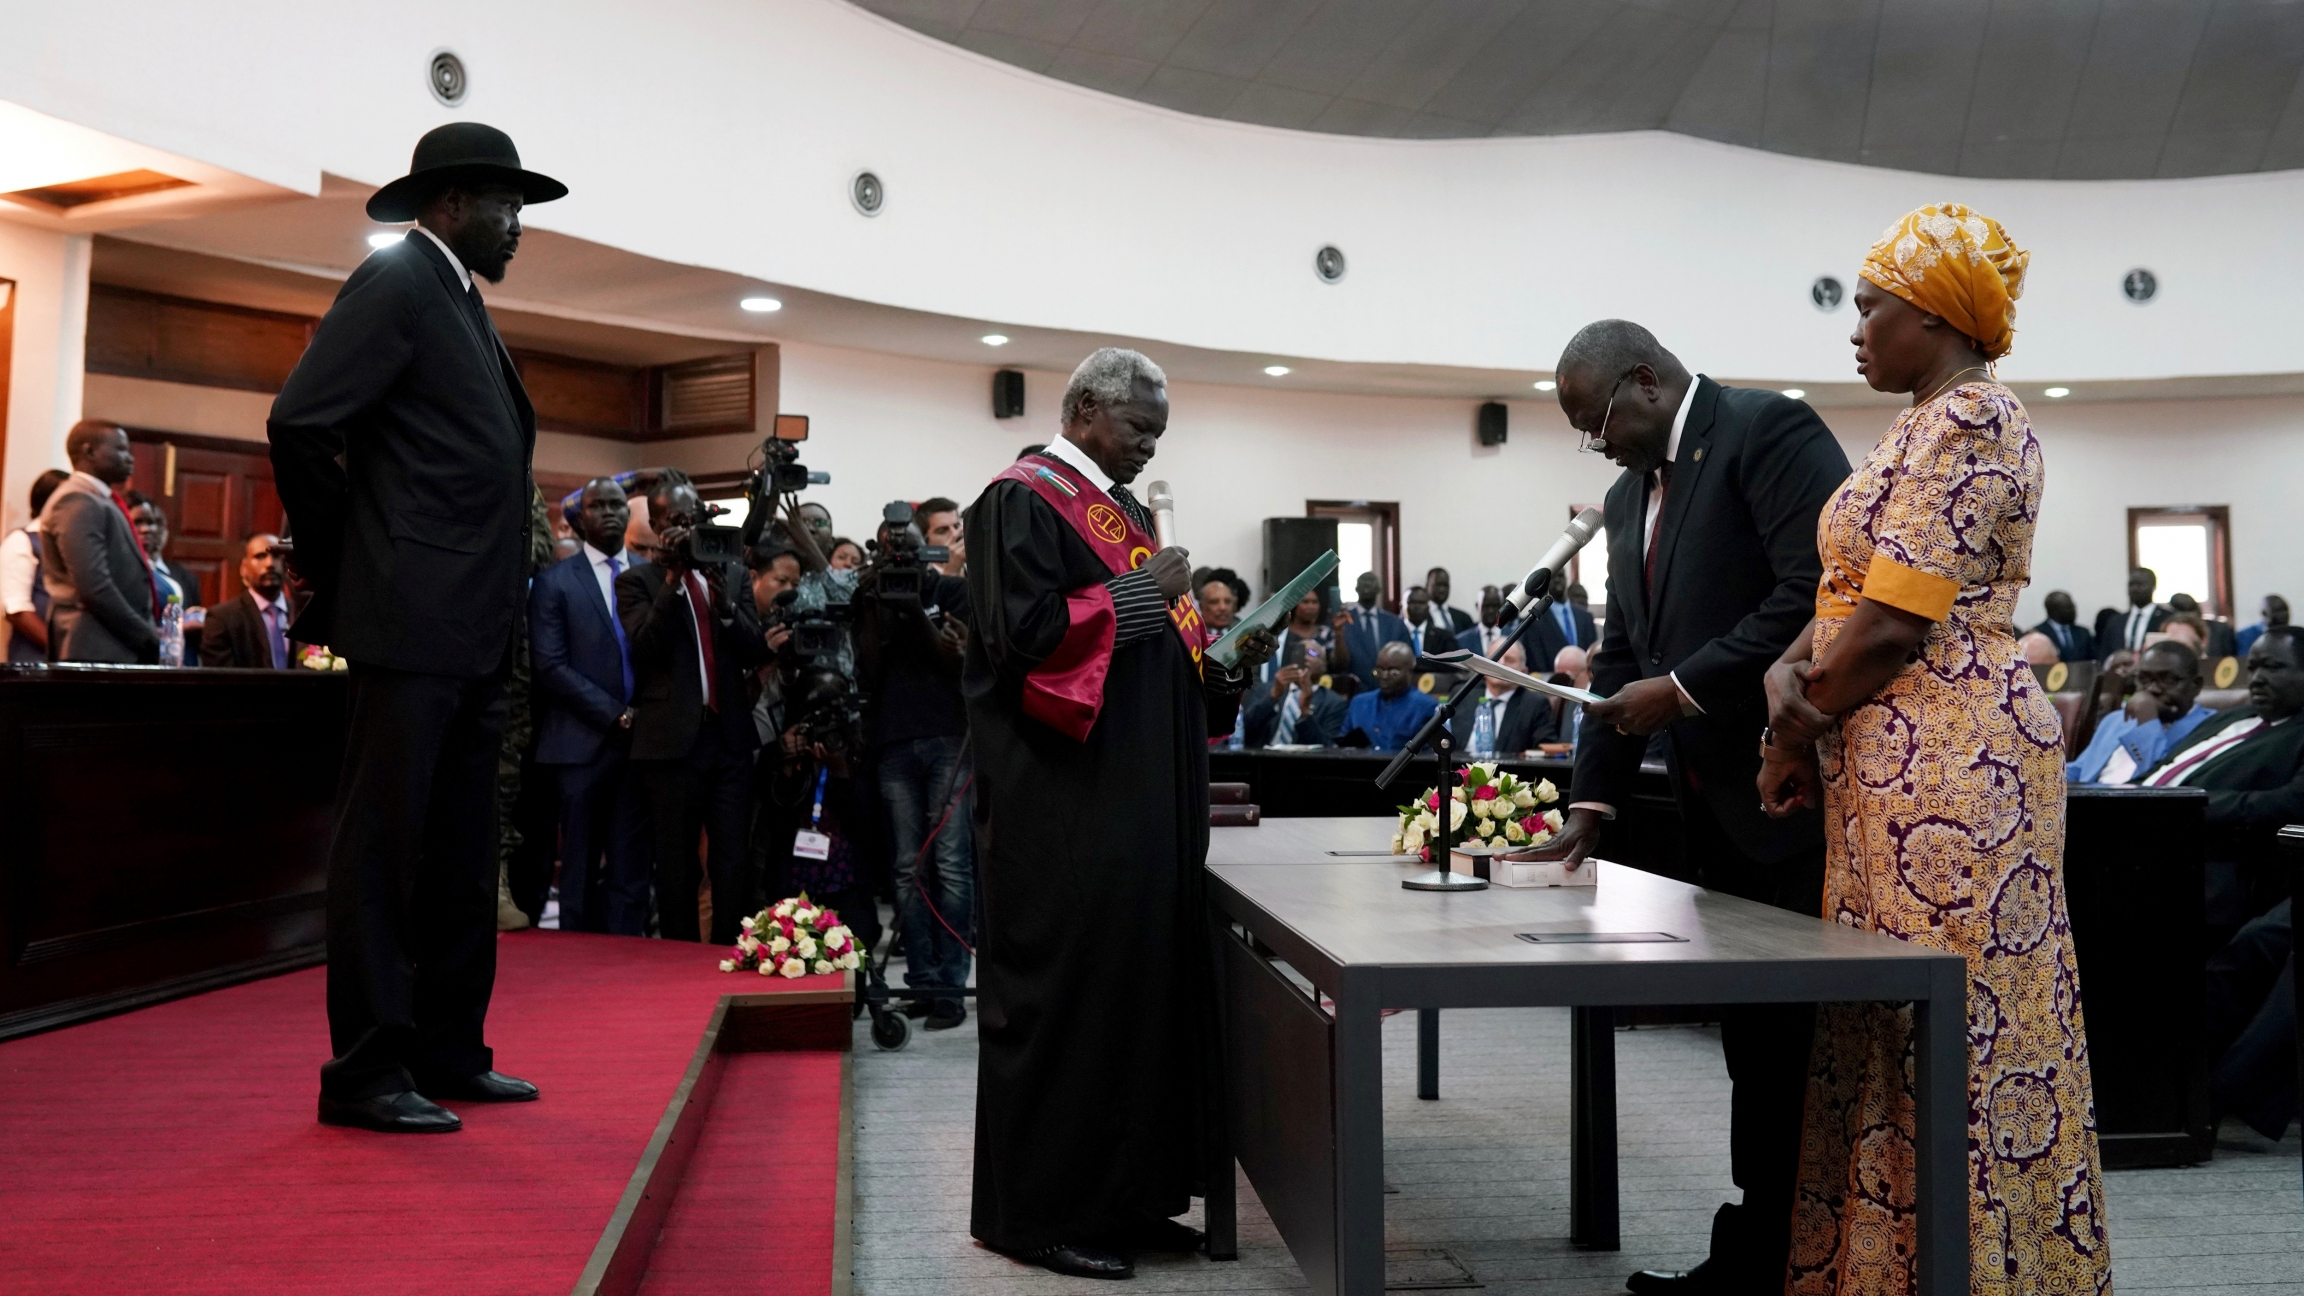 South Sudan's First Vice President Riek Machar takes the oath of office in front of President Salva Kiir and Chief Justice Chan Reech Madut at the State House in Juba, South Sudan, Feb. 22, 2020.